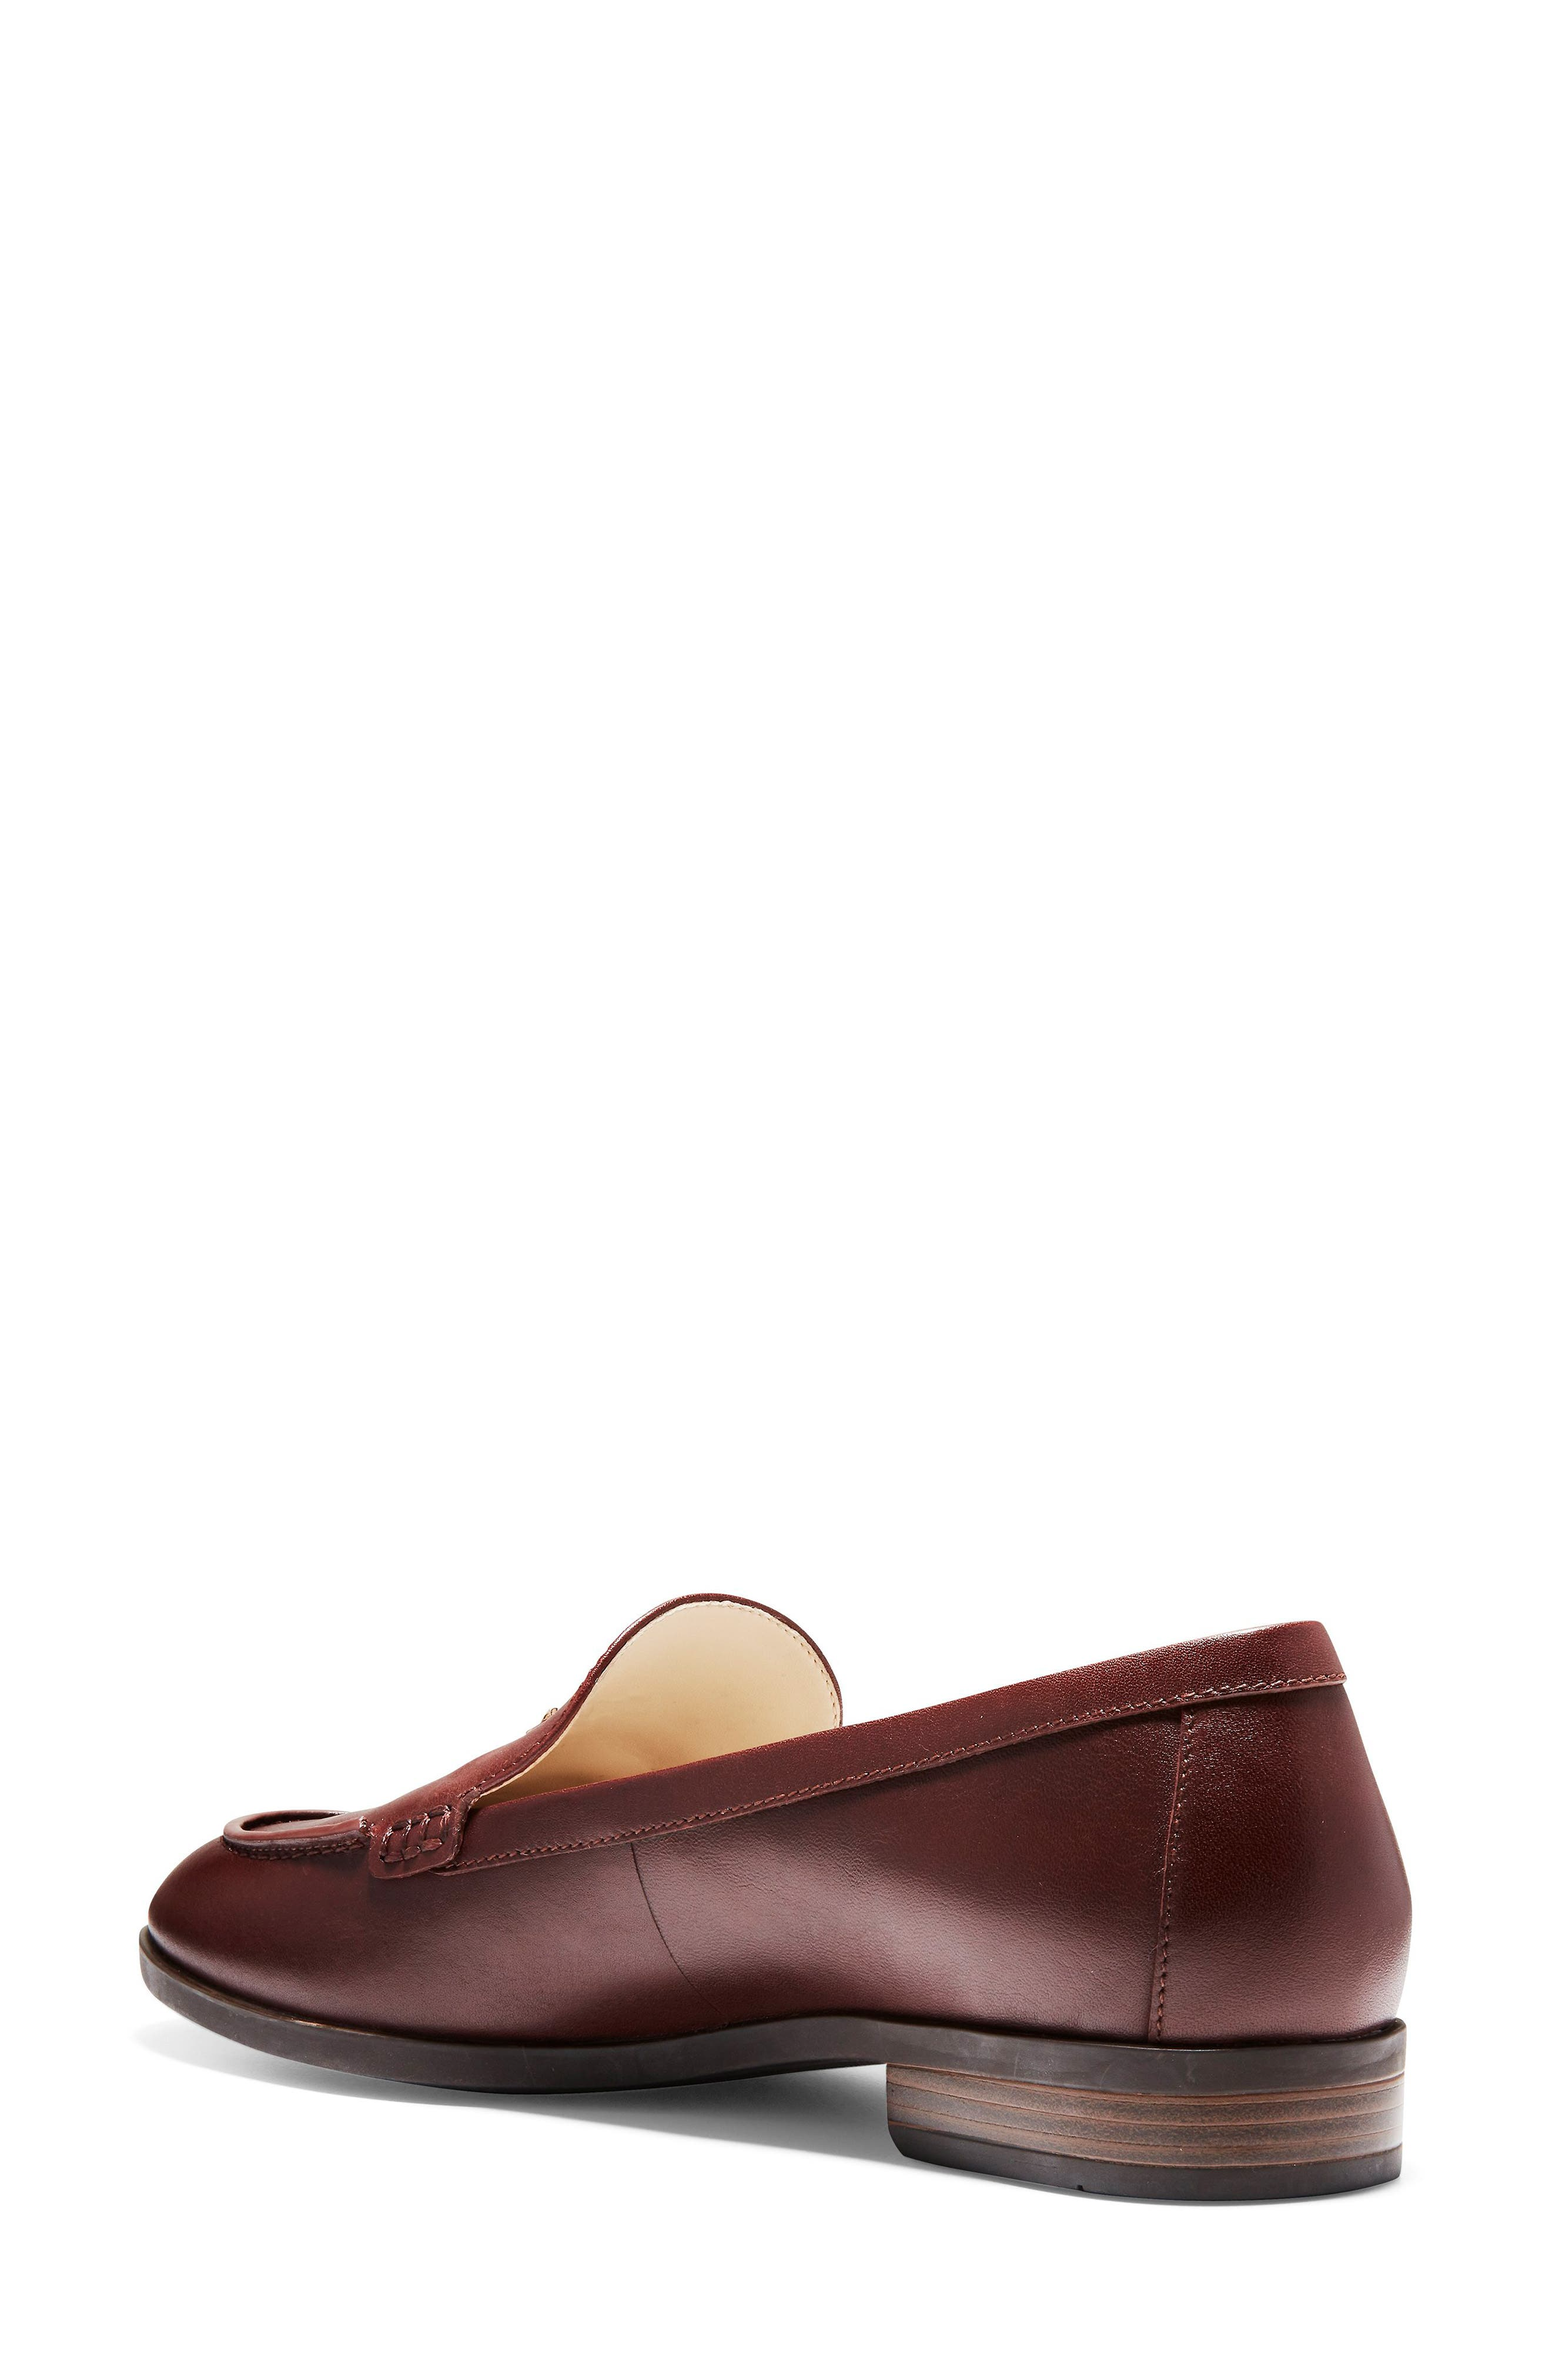 Pinch Lobster Loafer,                             Alternate thumbnail 10, color,